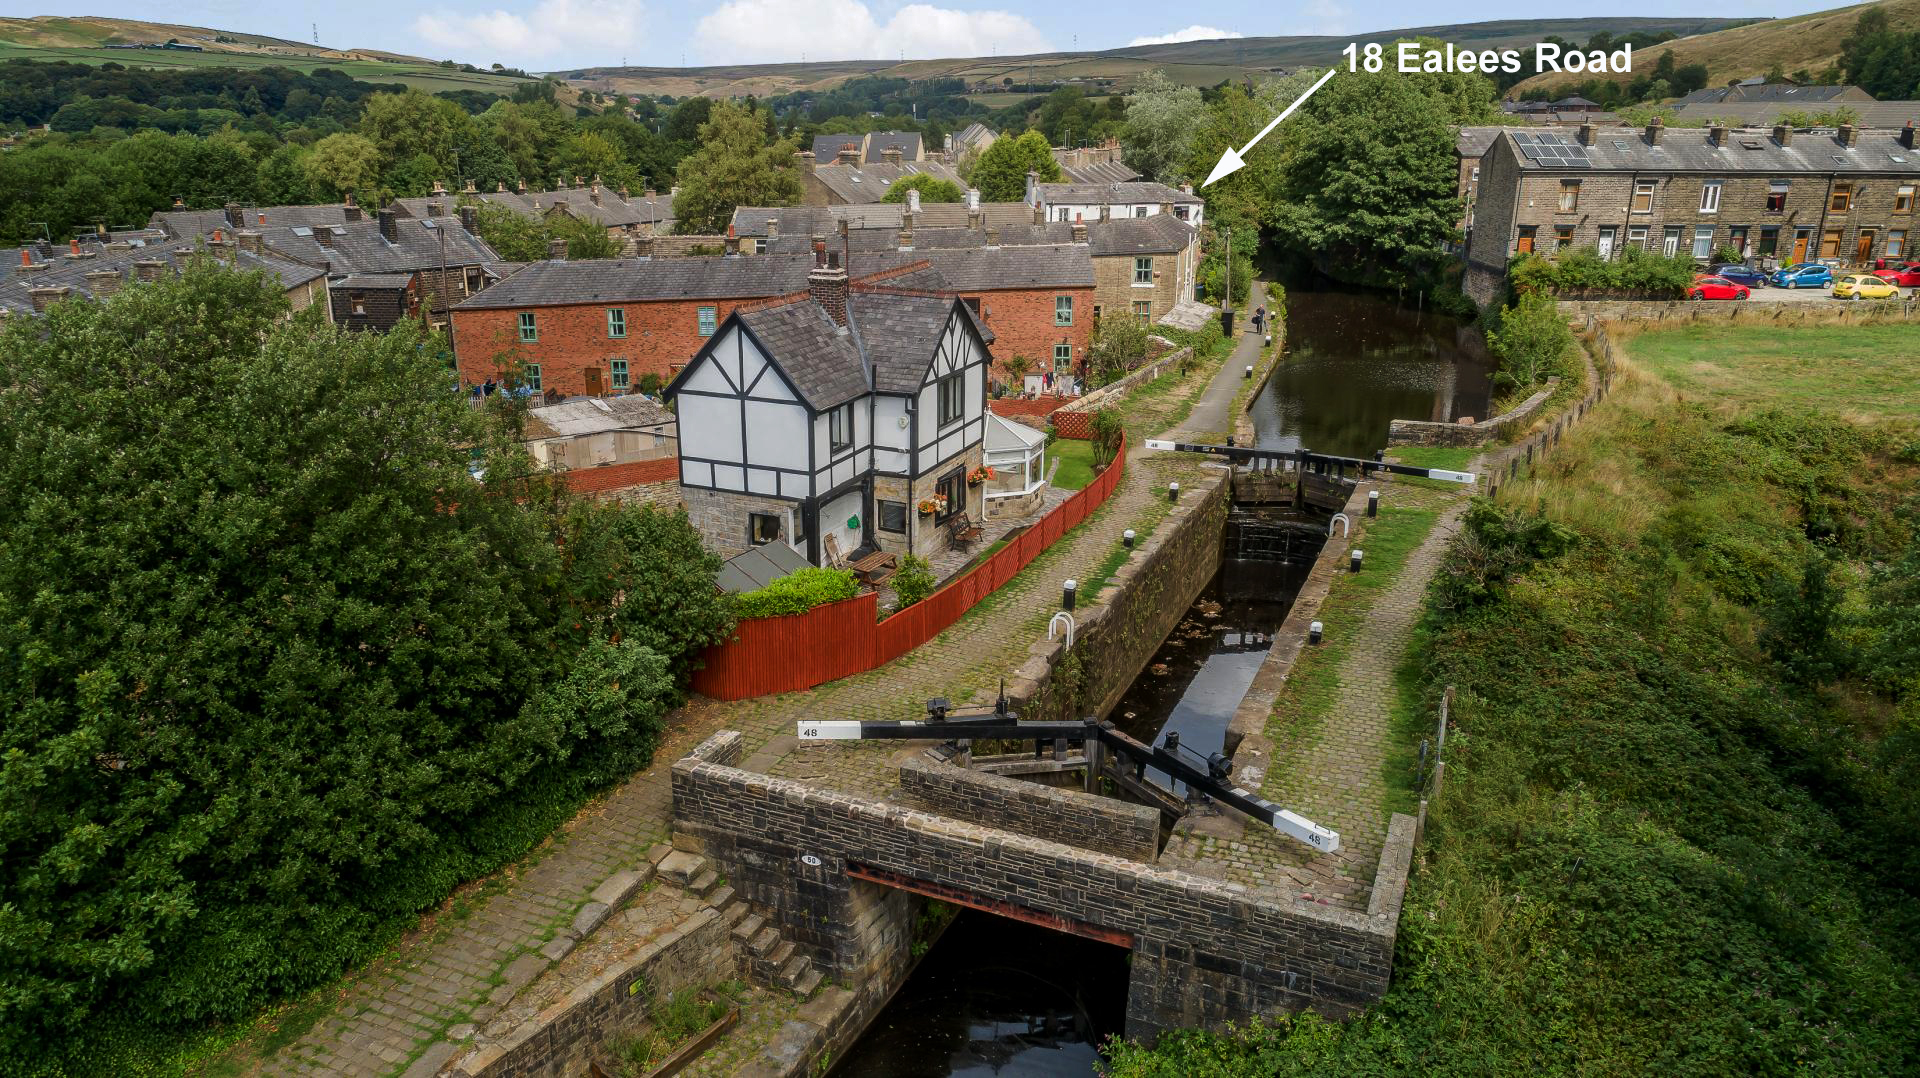 Canal at Ealees Littleborough